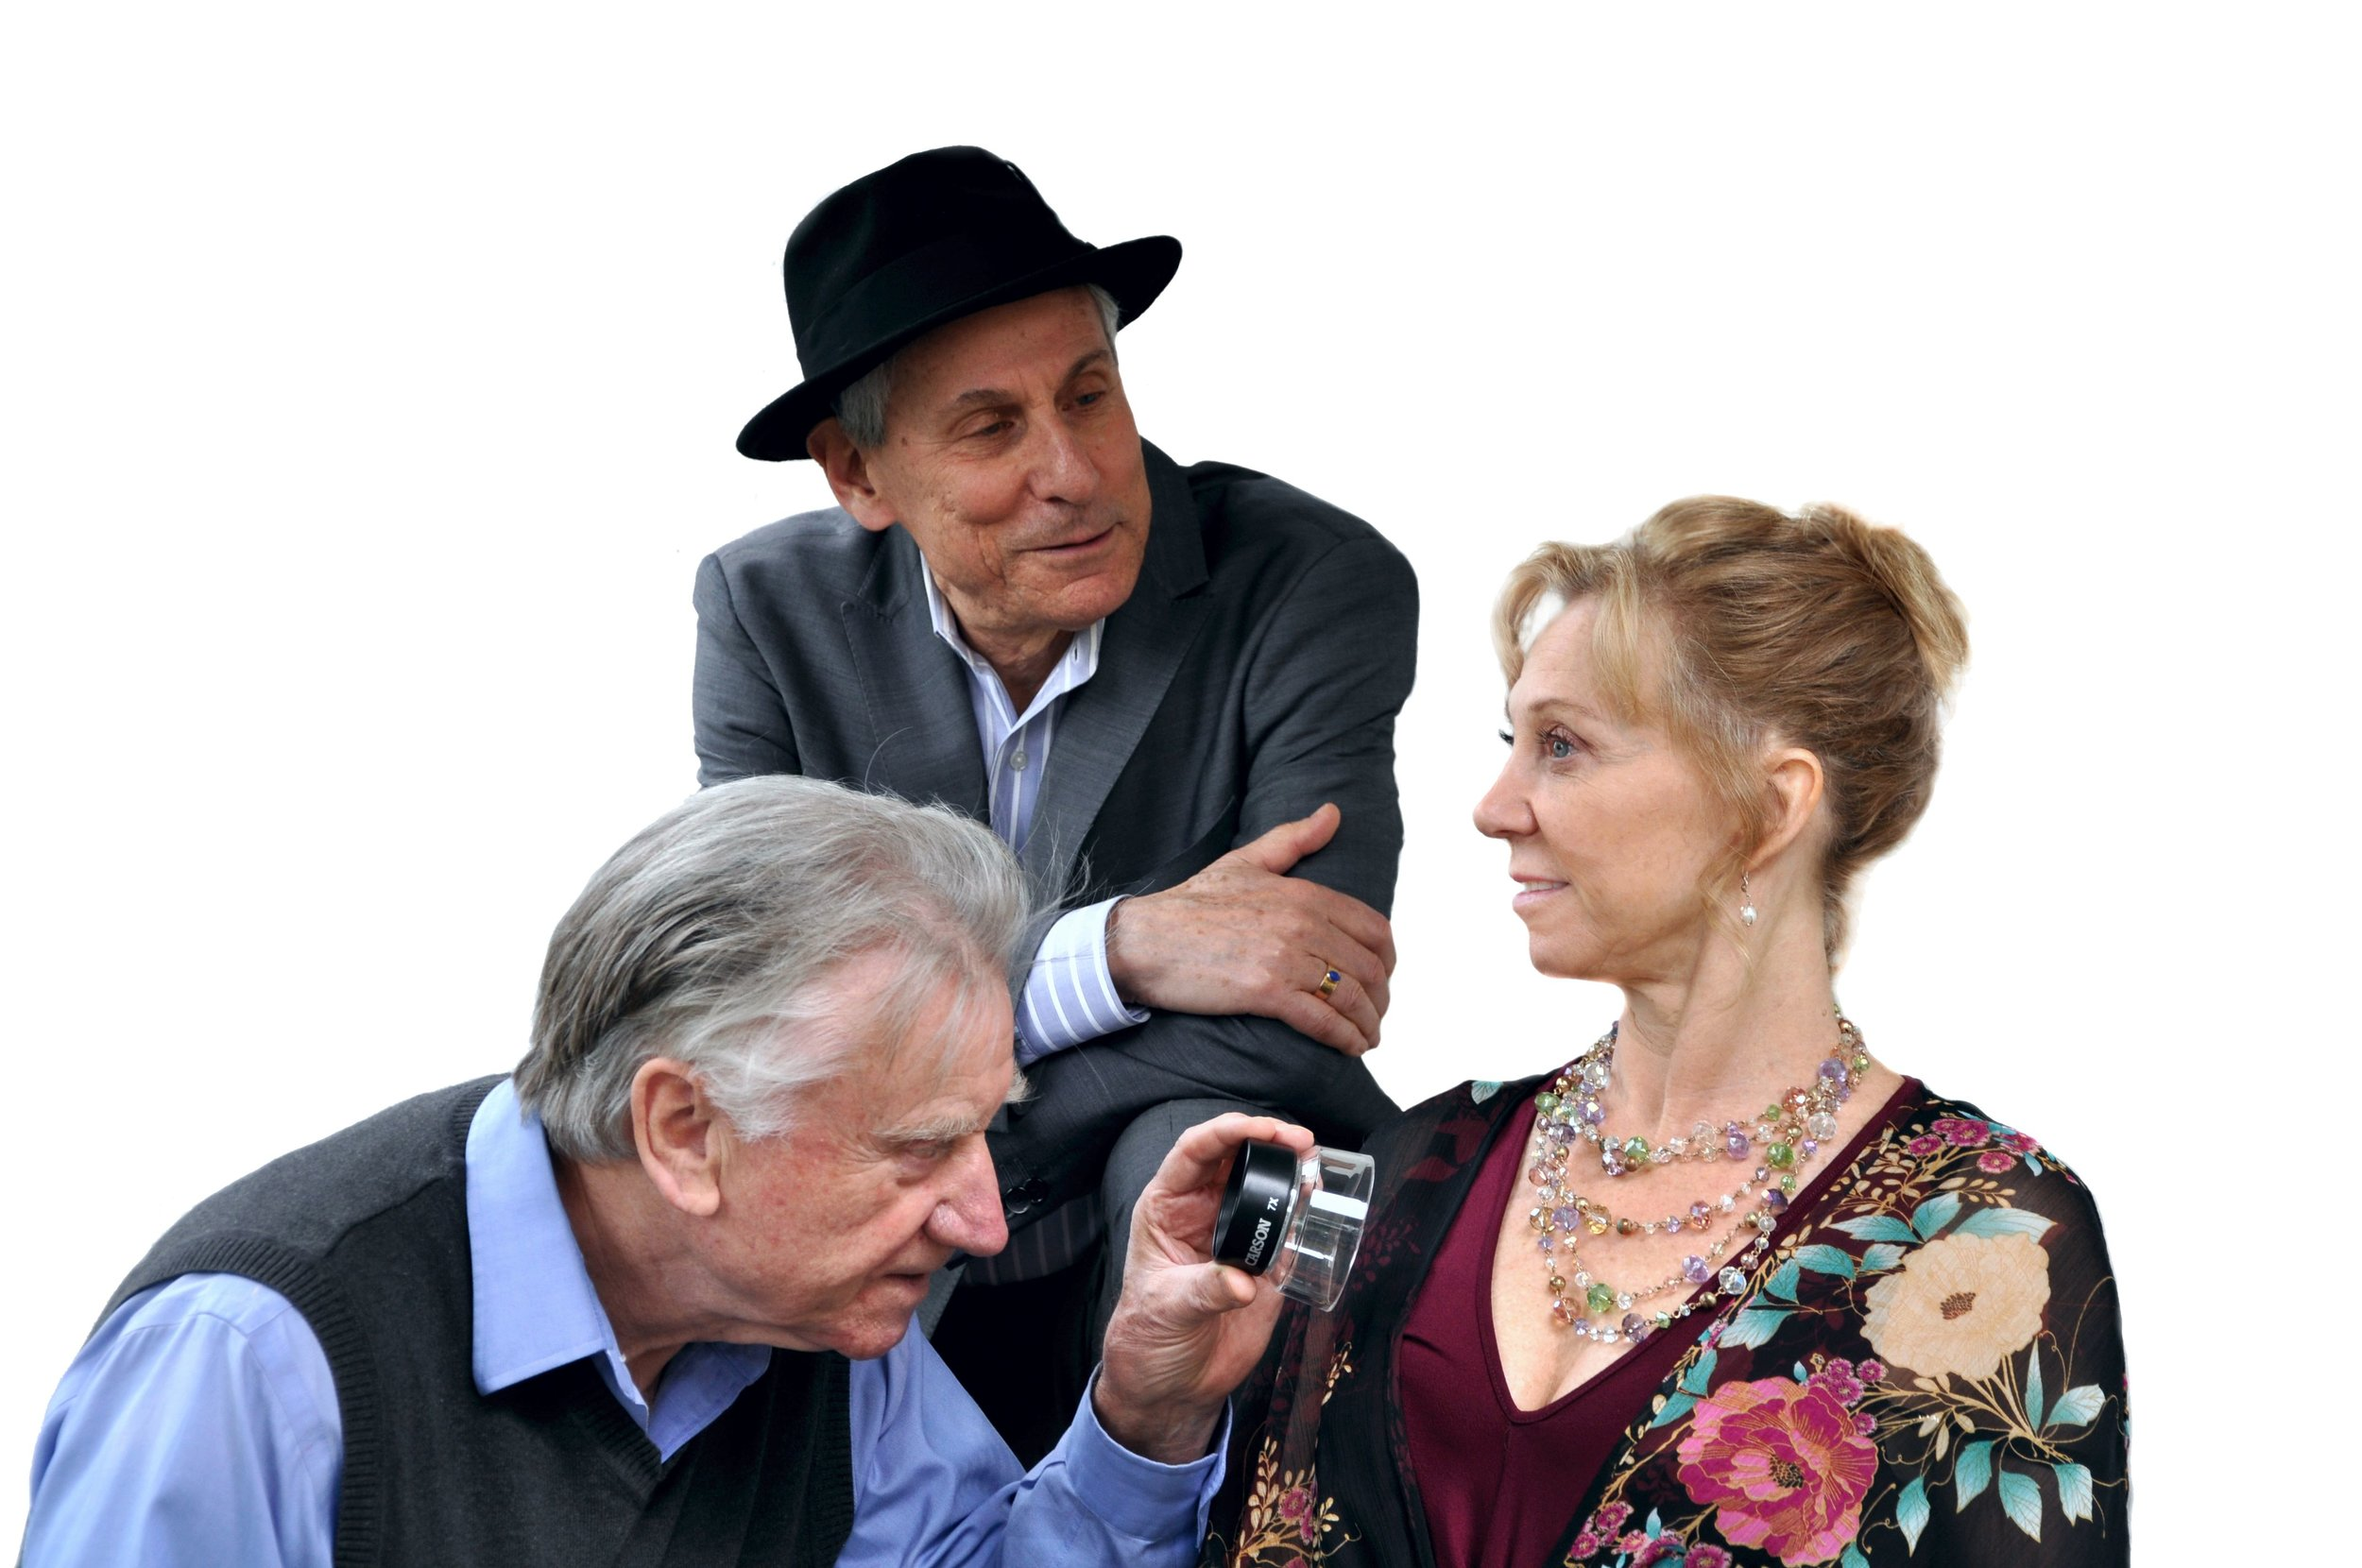 From left: Terence Kelly, Jerry Wasserman, and Annabel Kershaw in Jack of Diamonds, at PAL Studio Theatre.